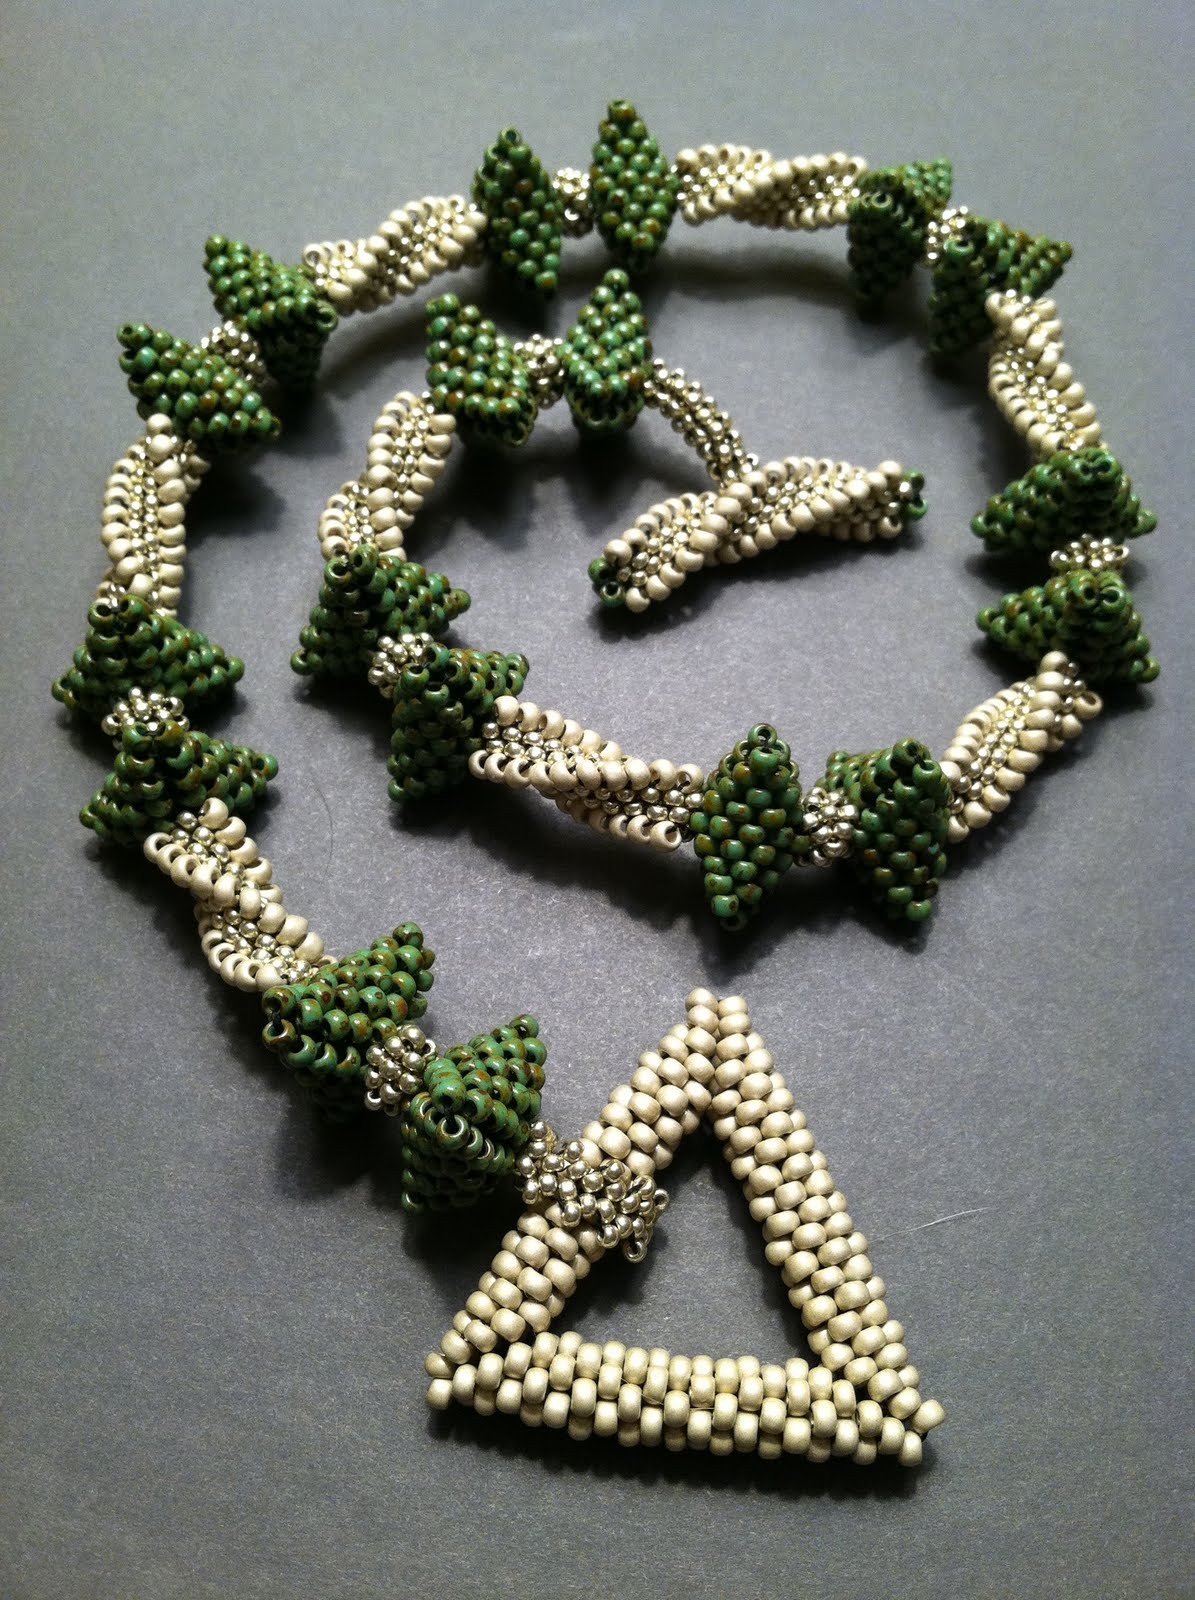 Beth Stone Beaded Jewelry Designs